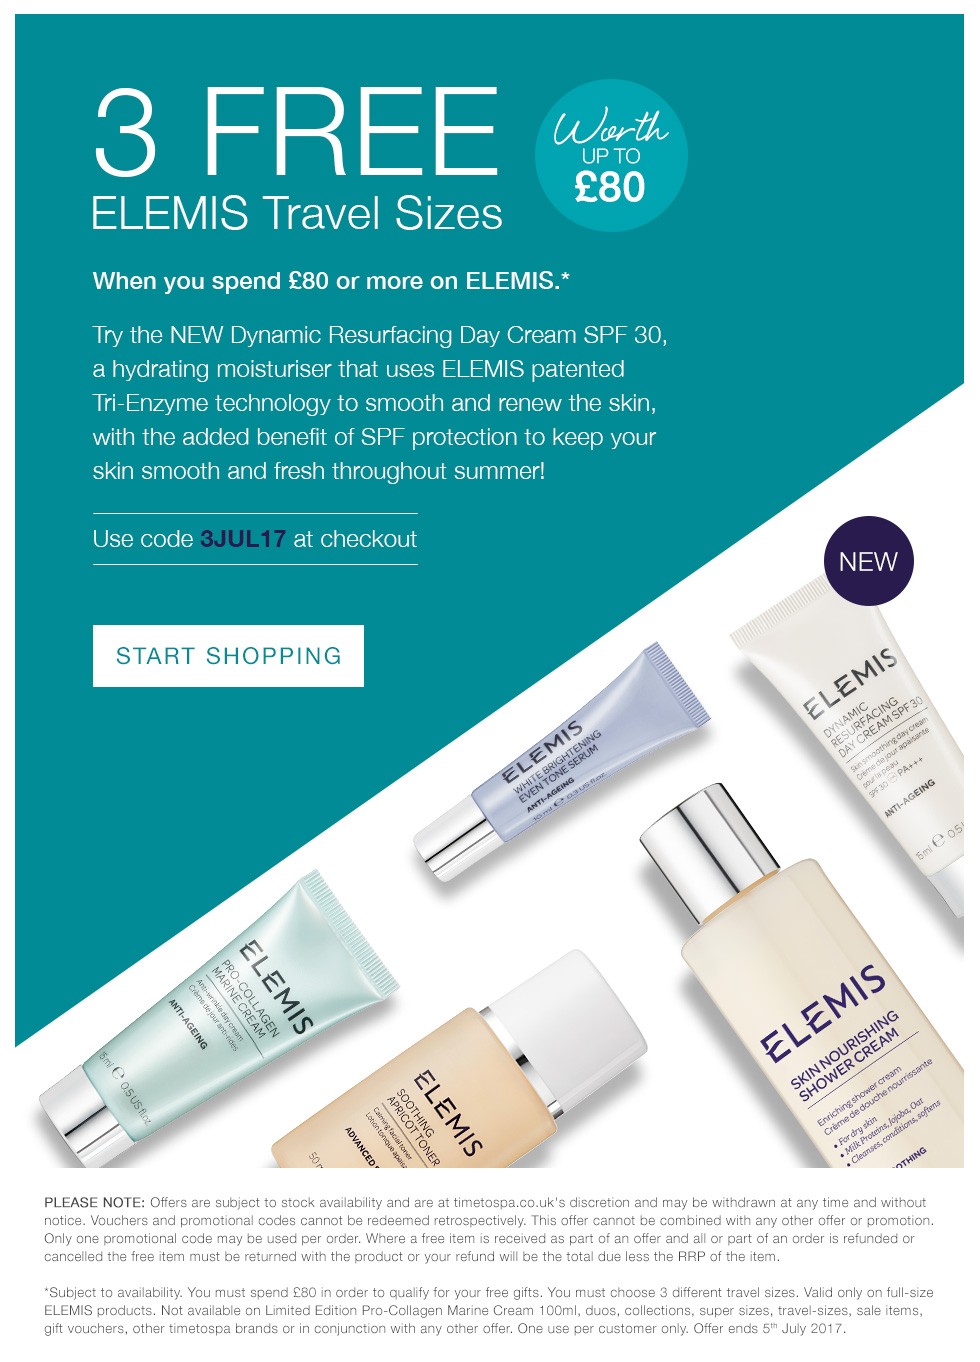 3 FREE ELEMIS Travel Sizes - Worth up To £80